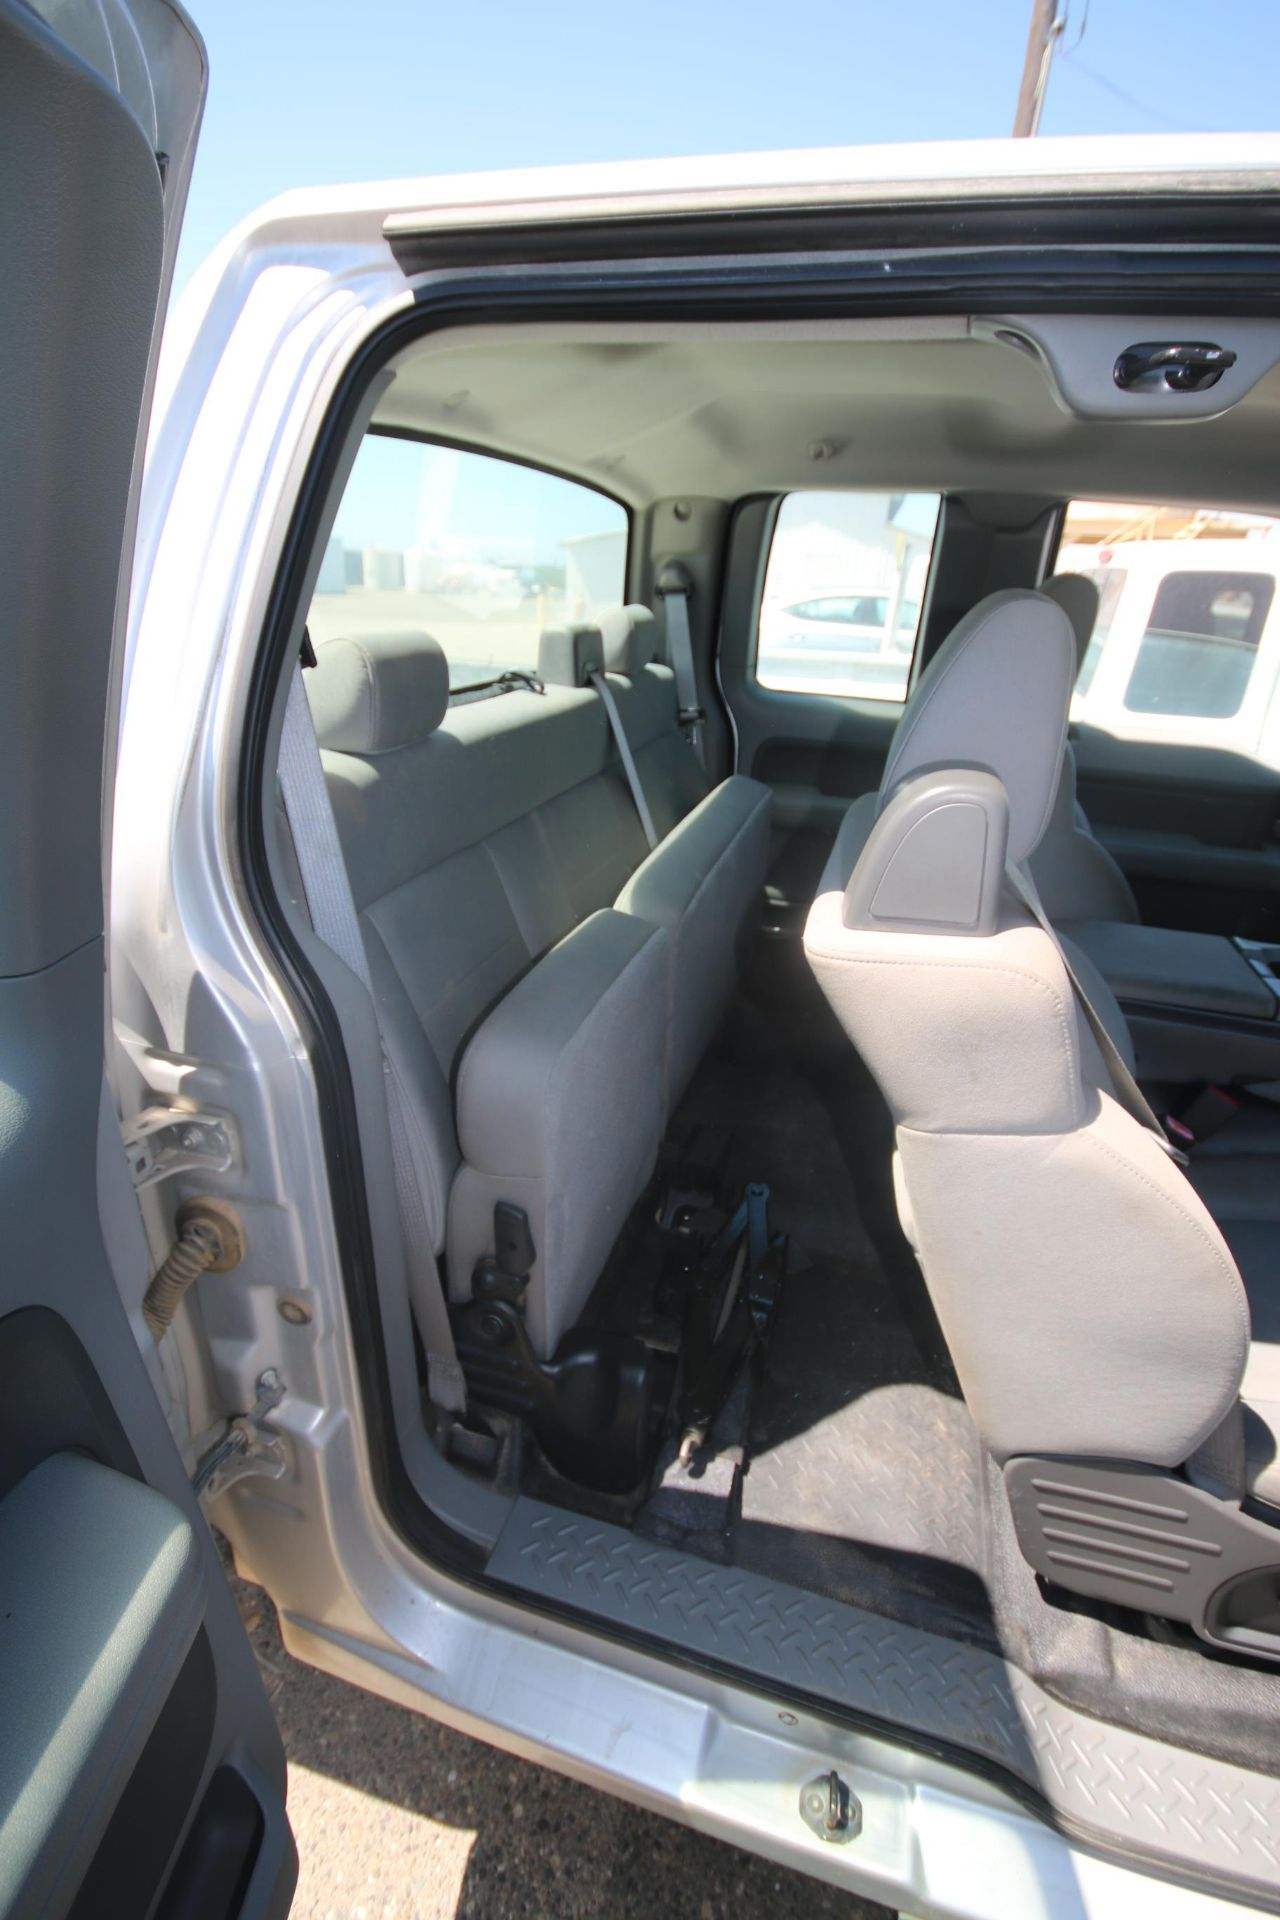 2008 Ford F150 Pick Up Truck, VIN #: 1FTRX12W7BFB9710, with 214,817 Miles, Started Up as of 06/24/ - Image 14 of 24